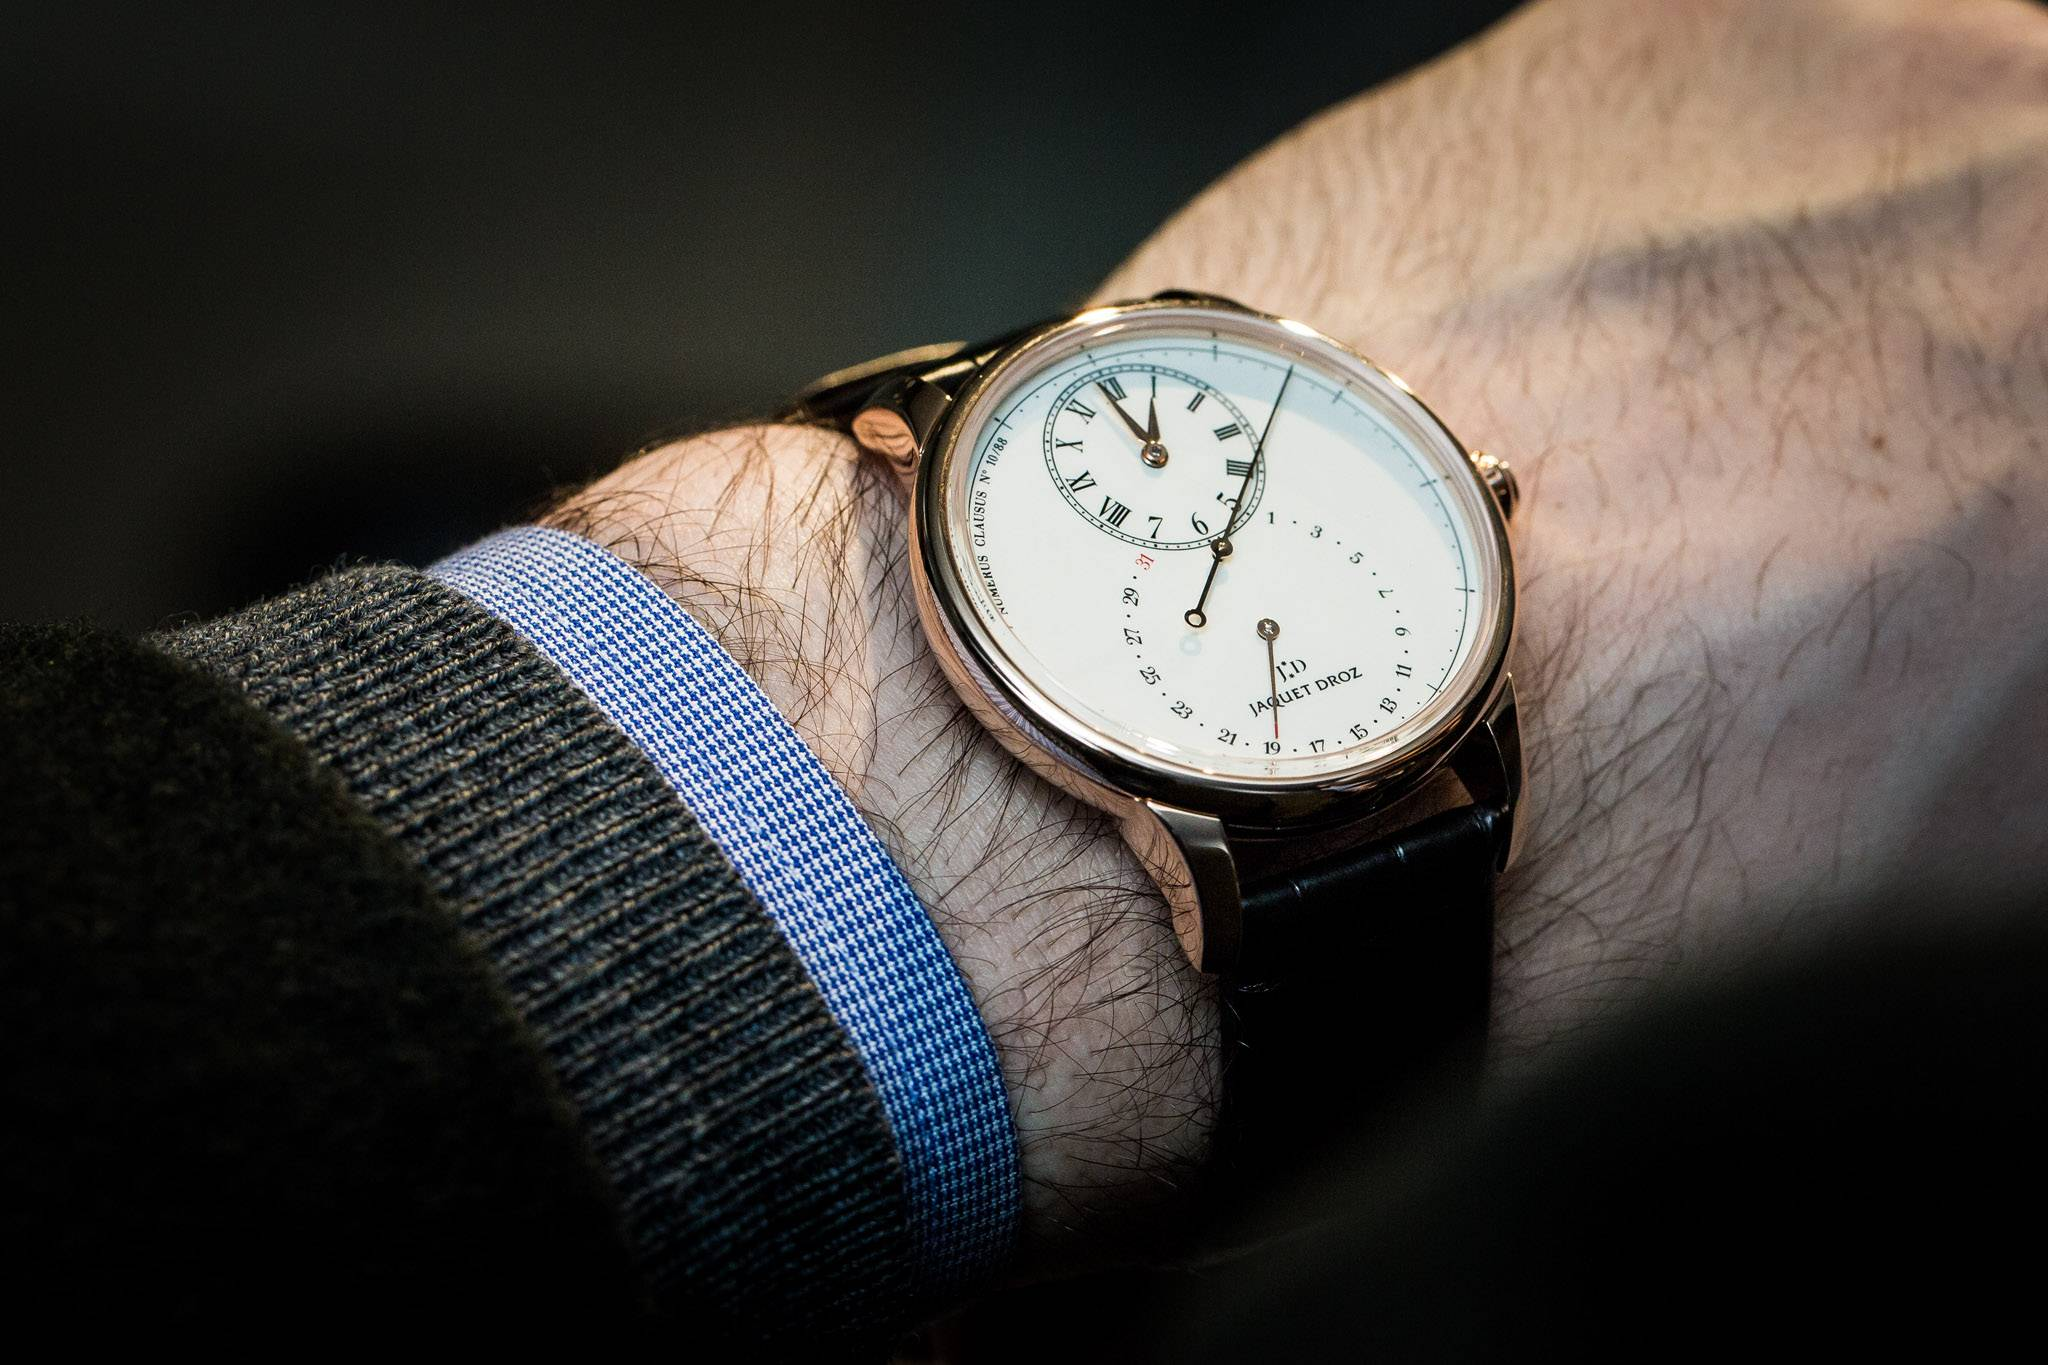 Jaquet Droz Grande Seconde Deadbeat Watch Baselworld 2015 Wrist